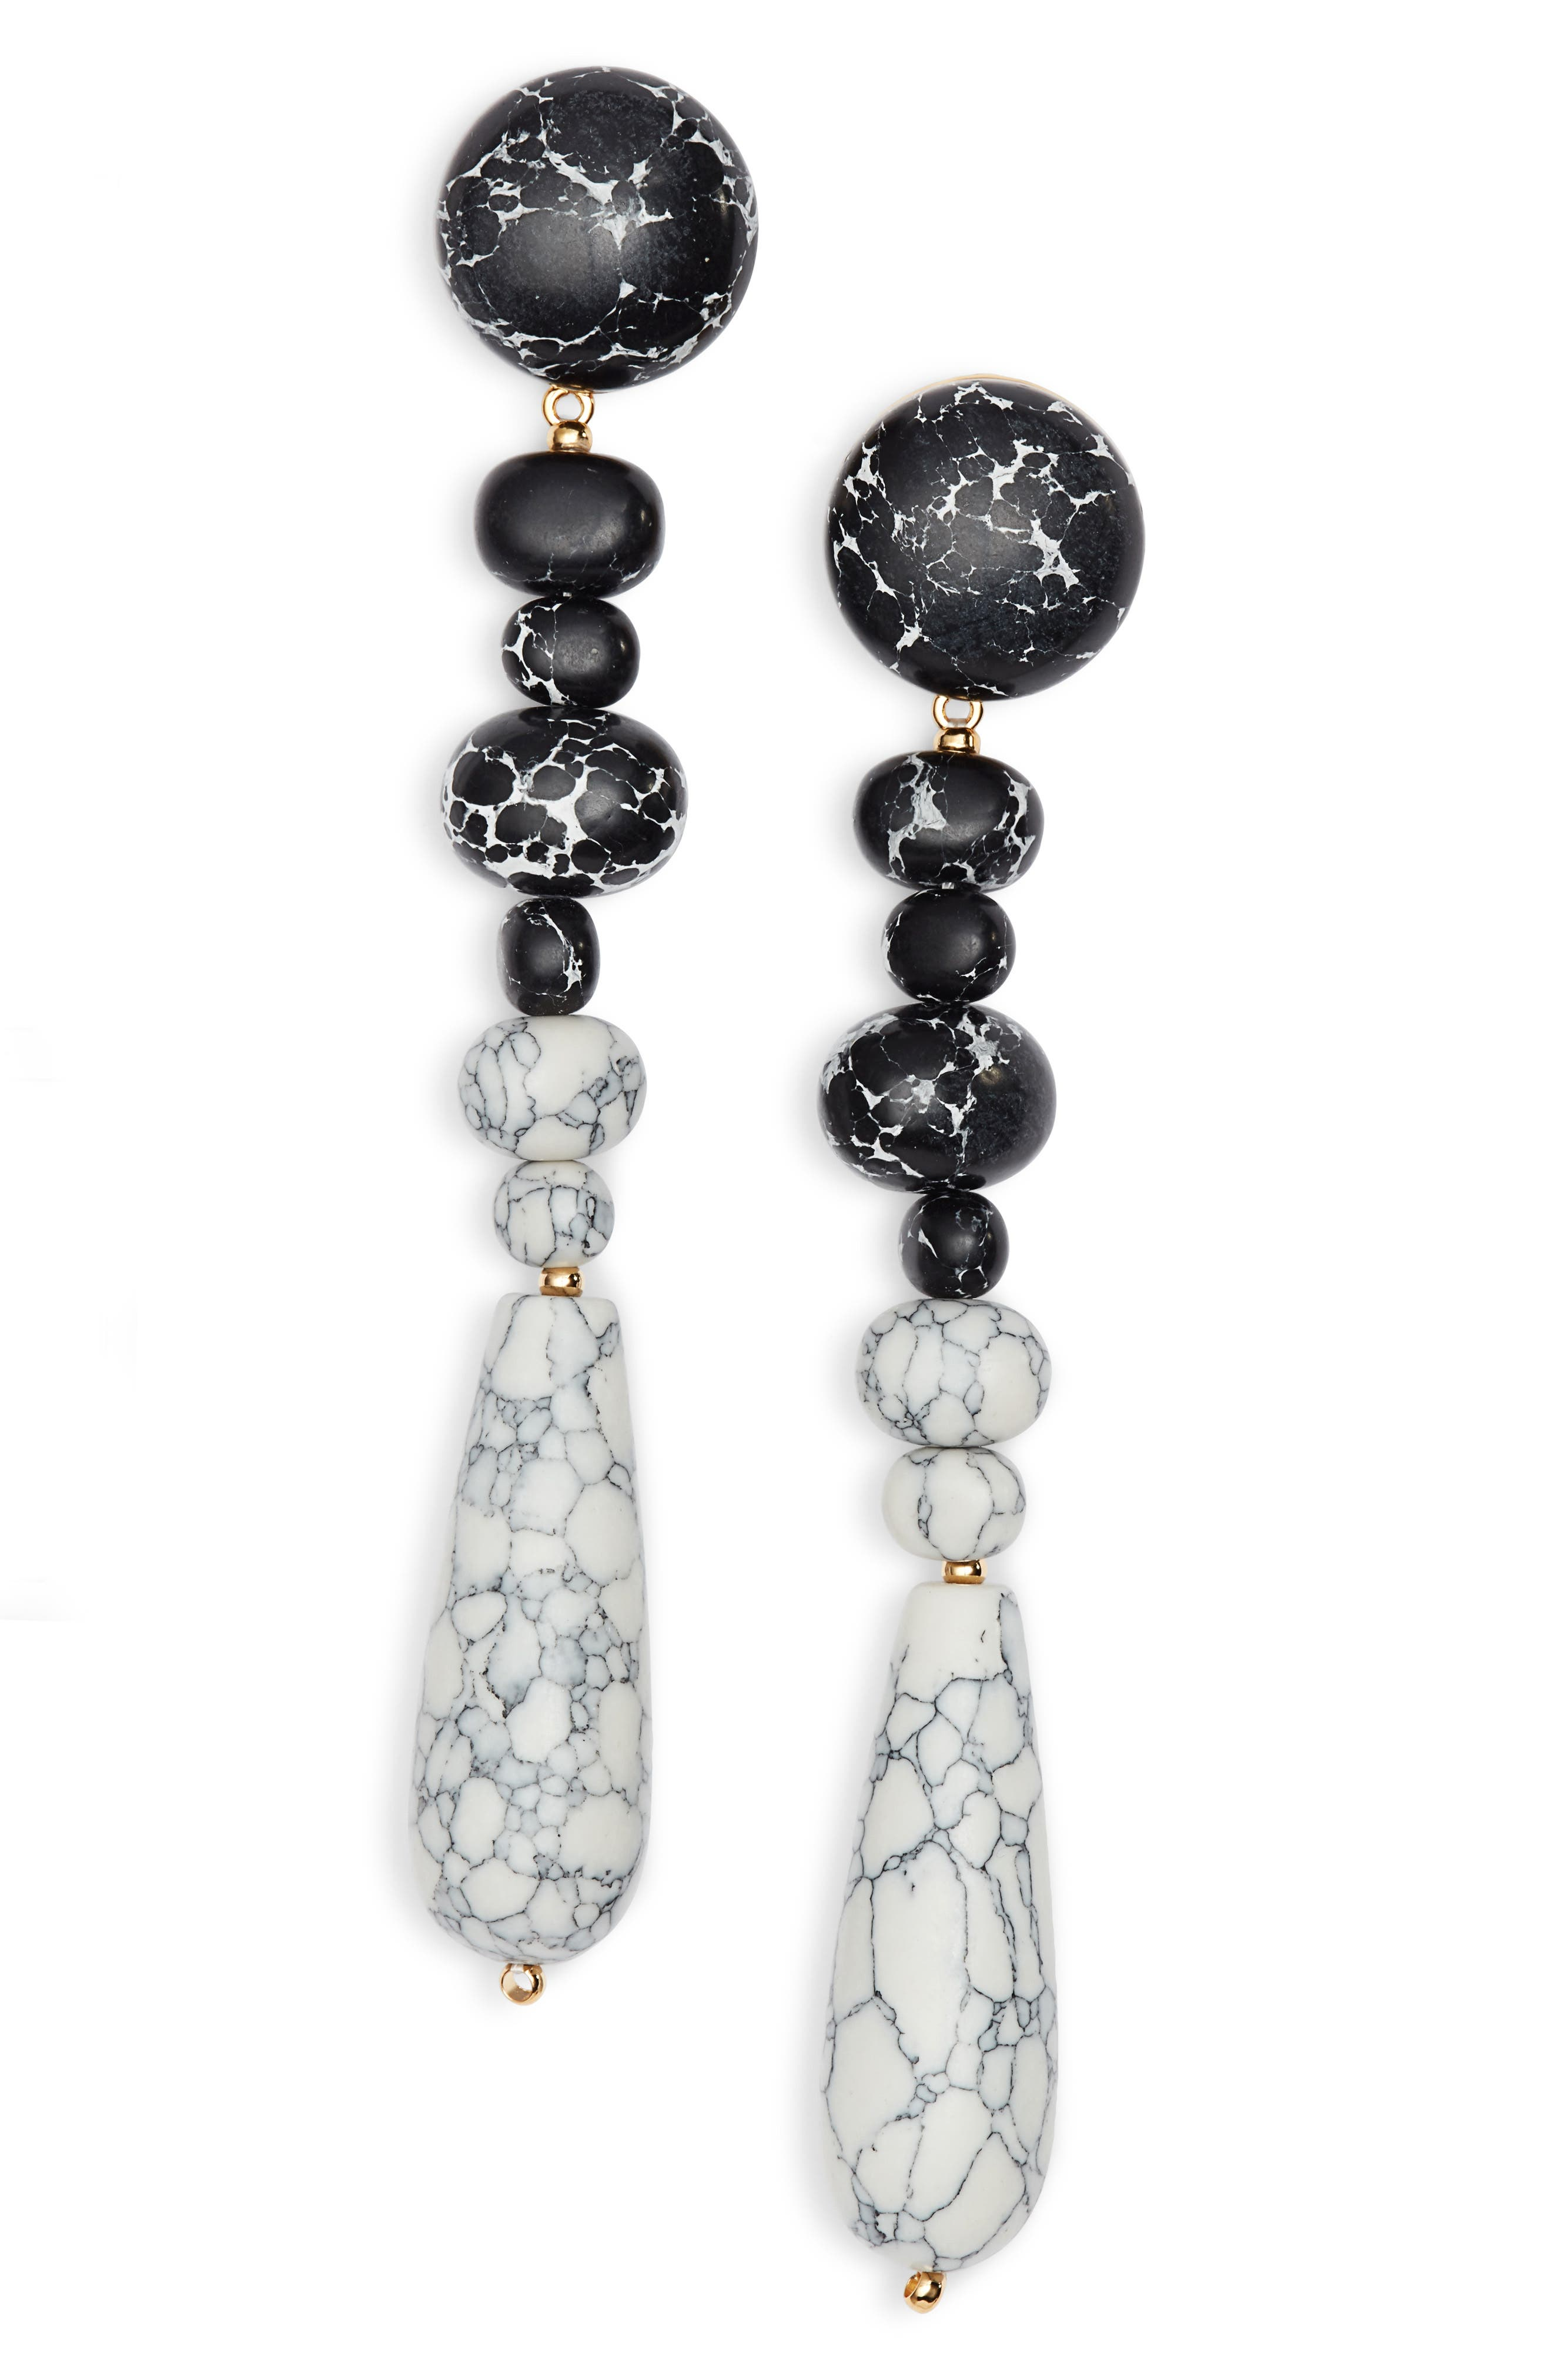 Copacabana Drop Earrings,                             Main thumbnail 1, color,                             BLACK AND WHITE